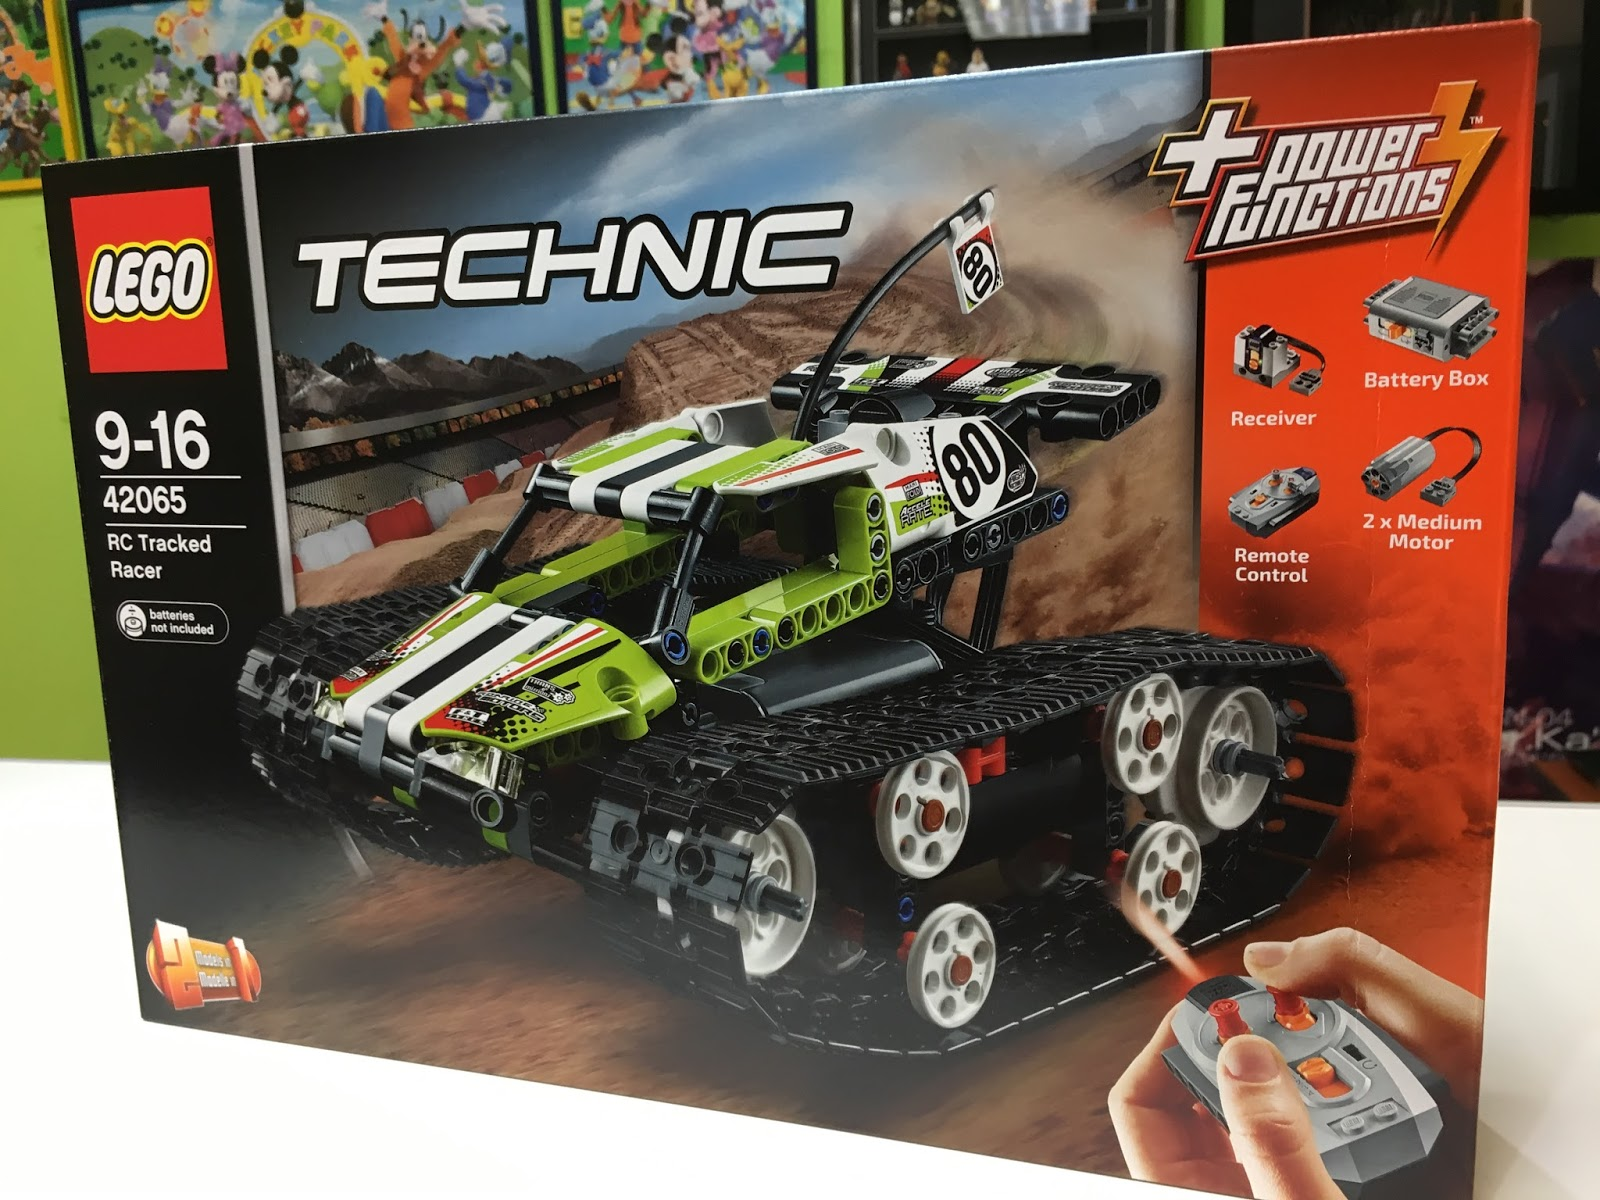 DeToyz Shop: 2017 LEGO Creator & Technic sets new arrival